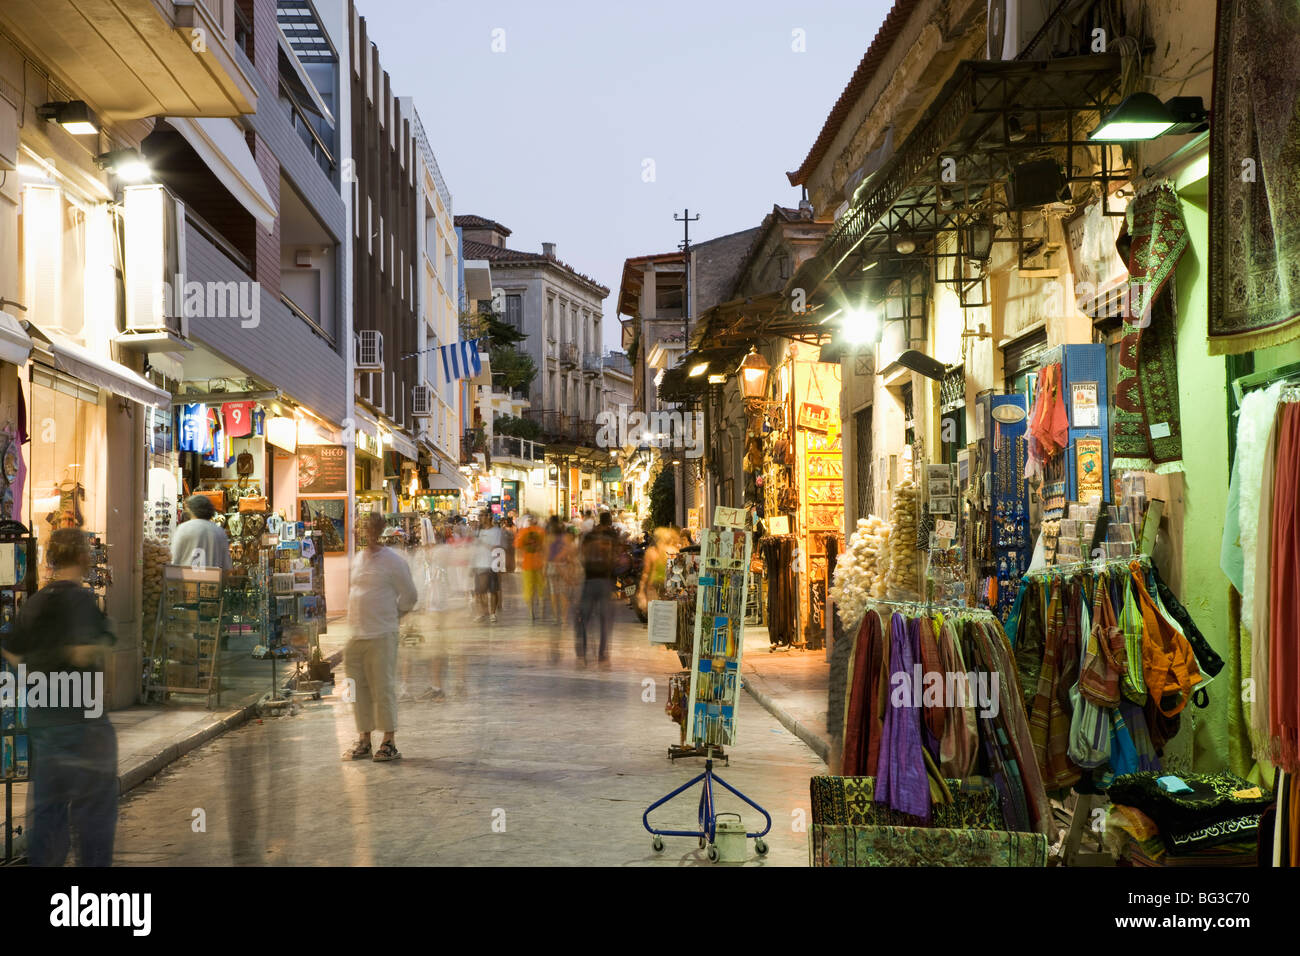 The Plaka District, Athens, Greece, Europe - Stock Image